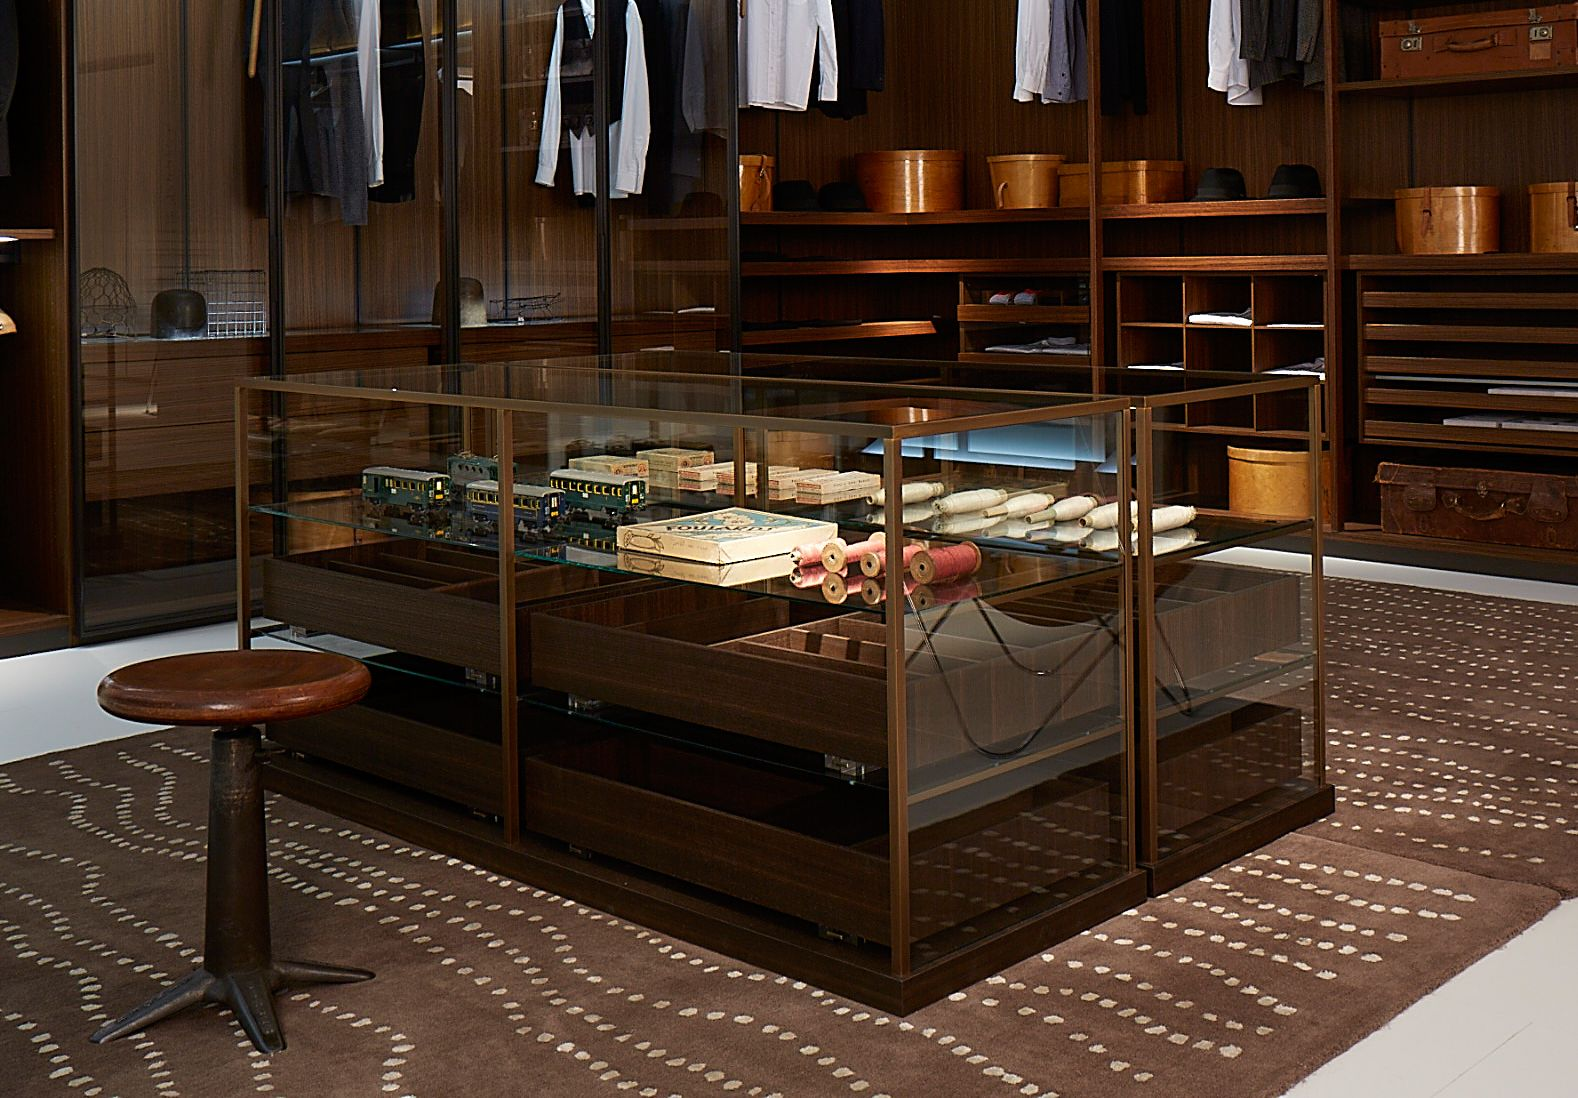 Porro Salone Del Mobile 2014 Acquario Closet Storage Island In Bronze Wood And Glass